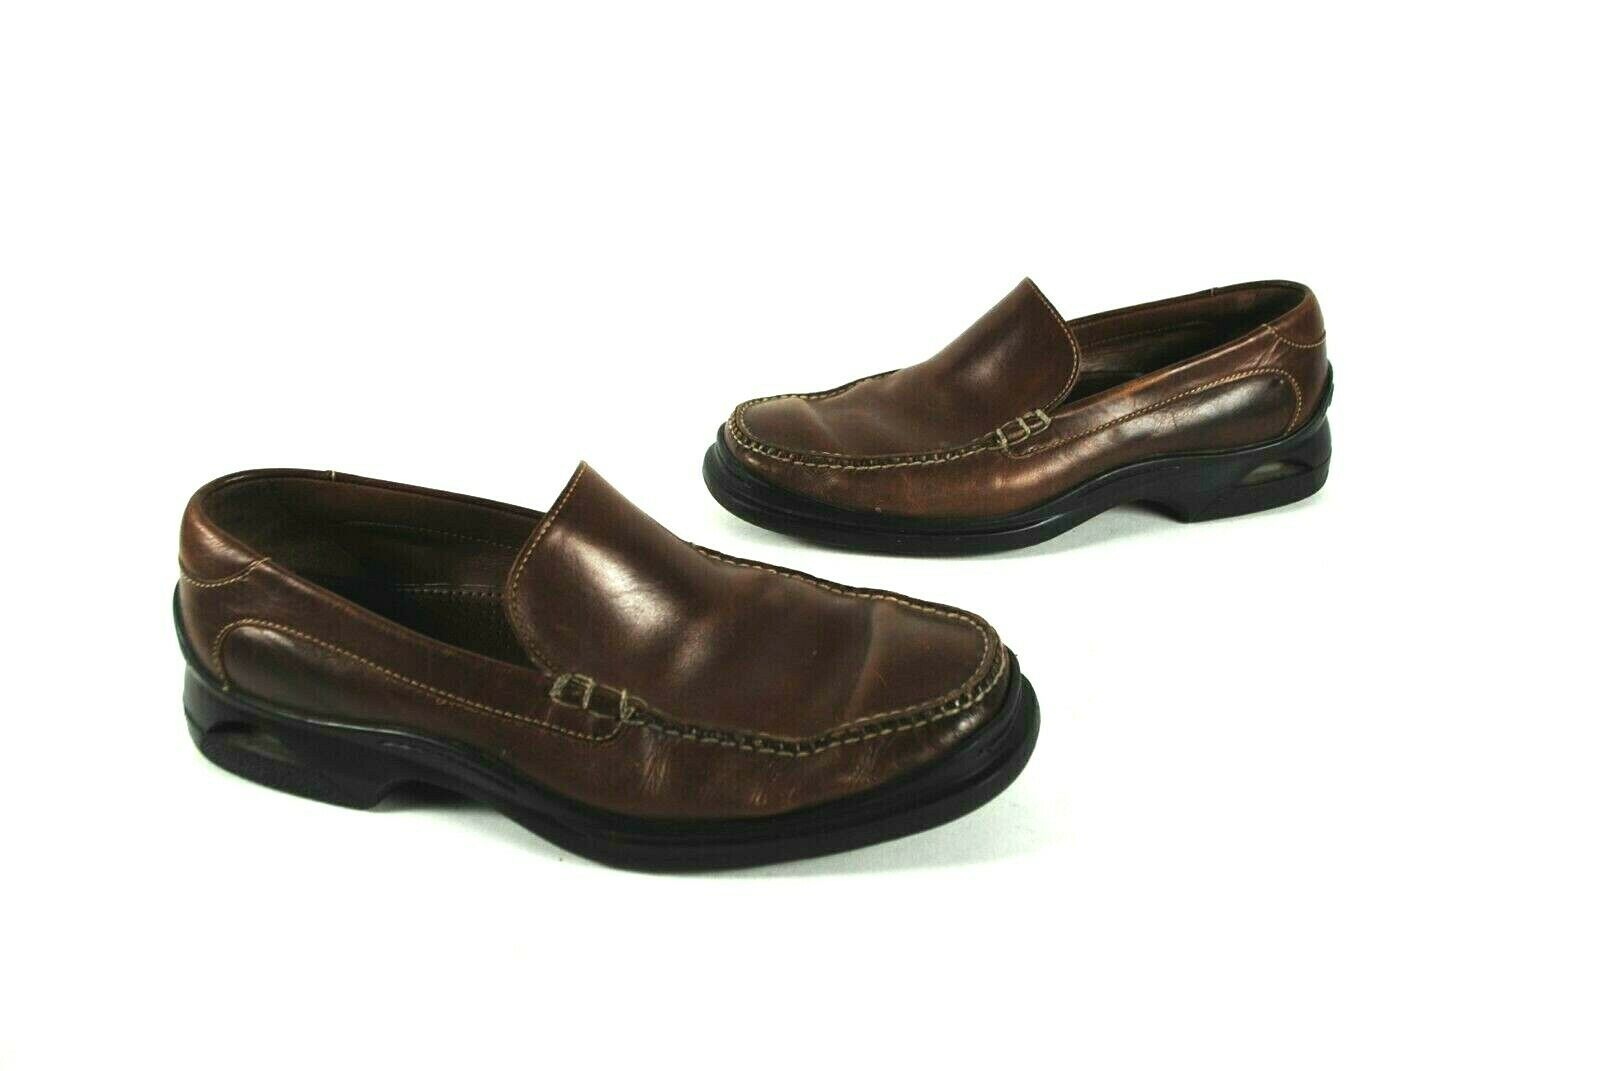 Cole Haan Air 07184 Santa Barbara Mens Brown Leather Slip On Loafers shoes 10M